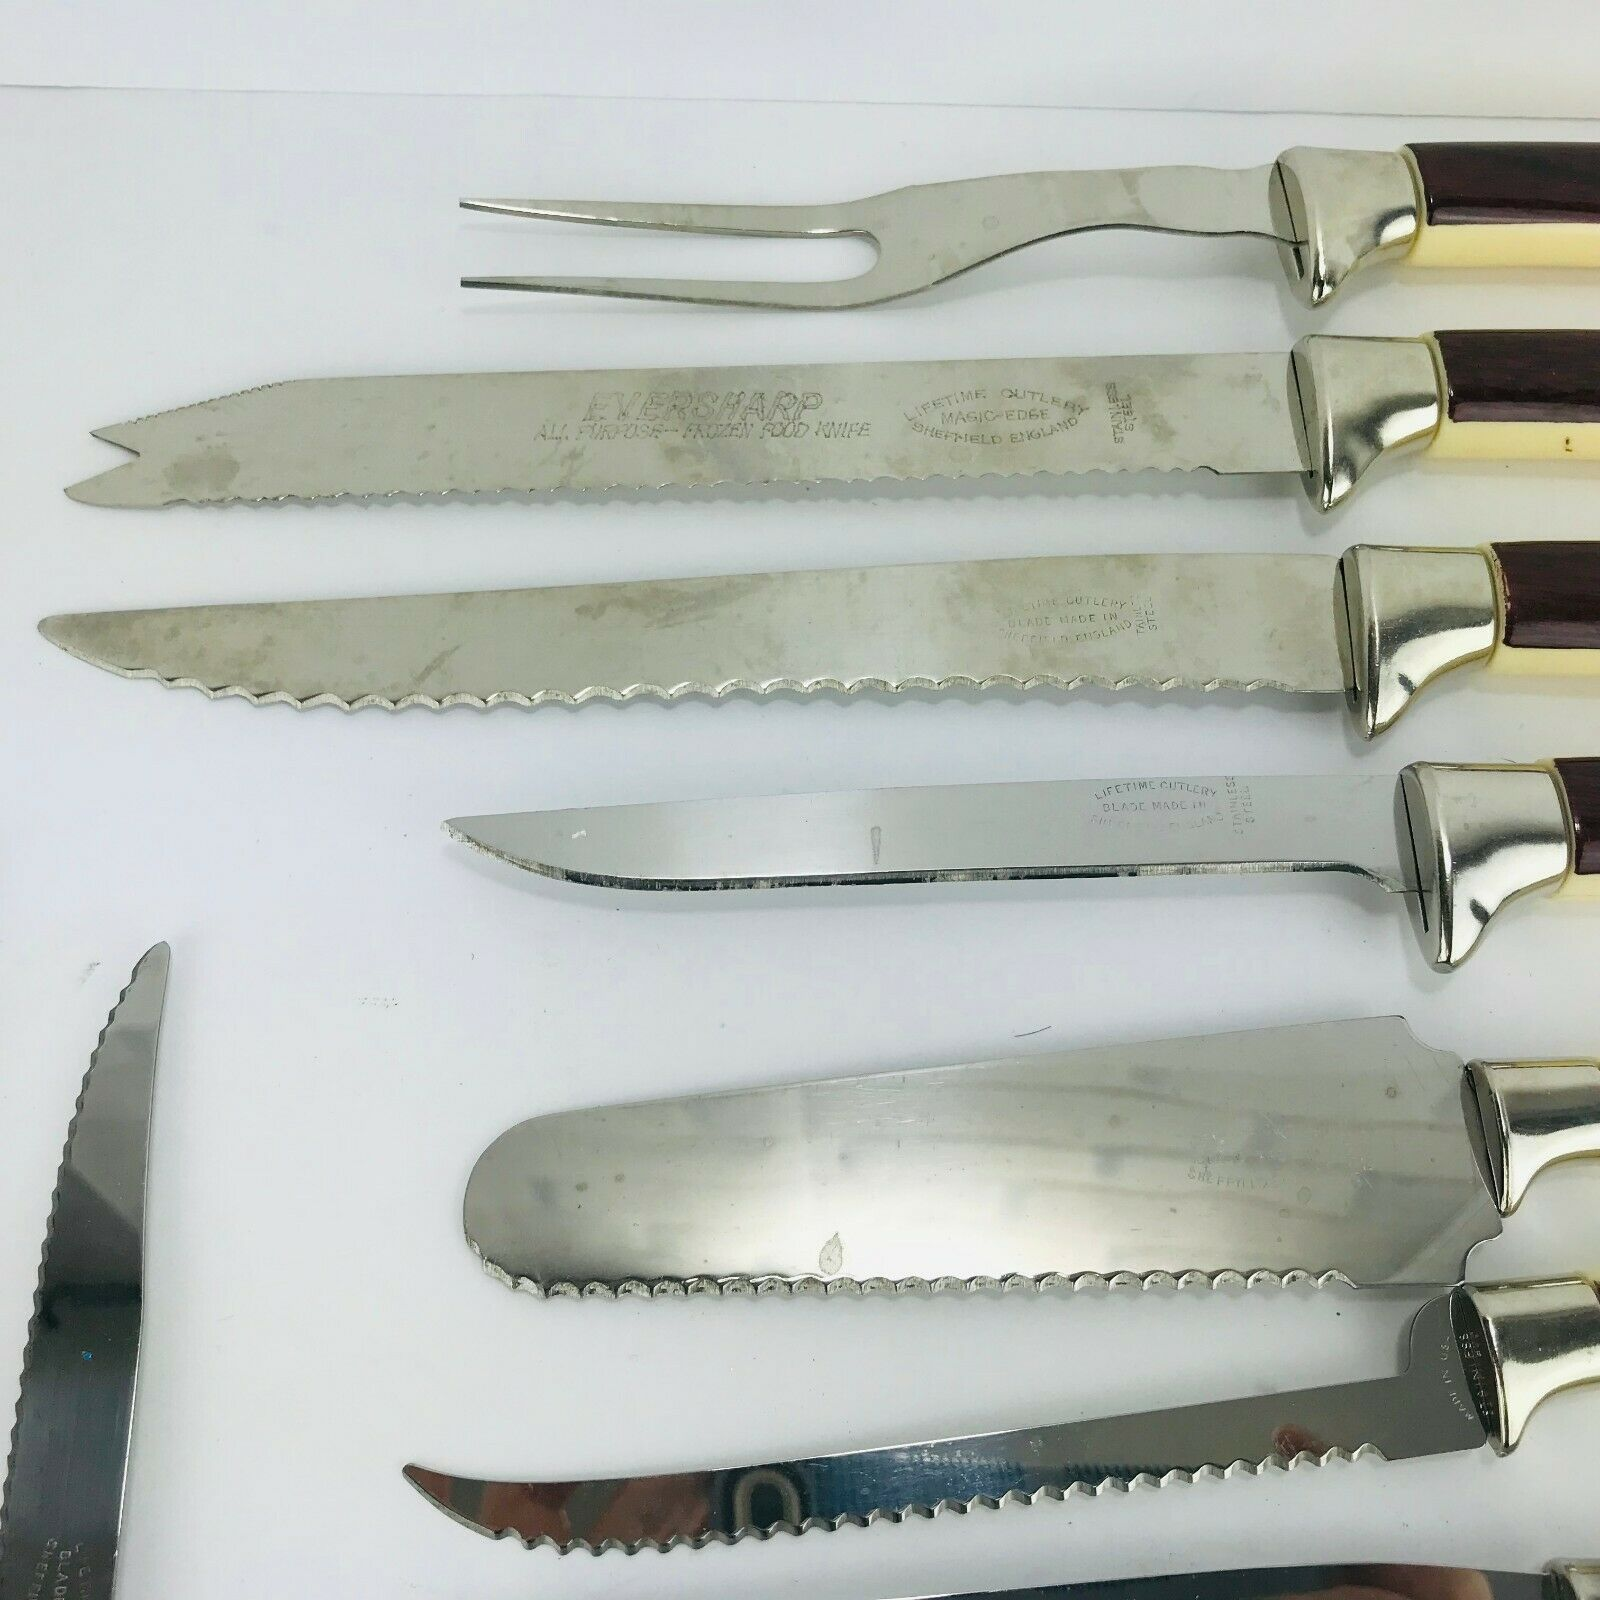 Sheffield England Stainless Steel Cutlery Cutlery Cutlery Knife Carving Serving Set of 19 e035f0